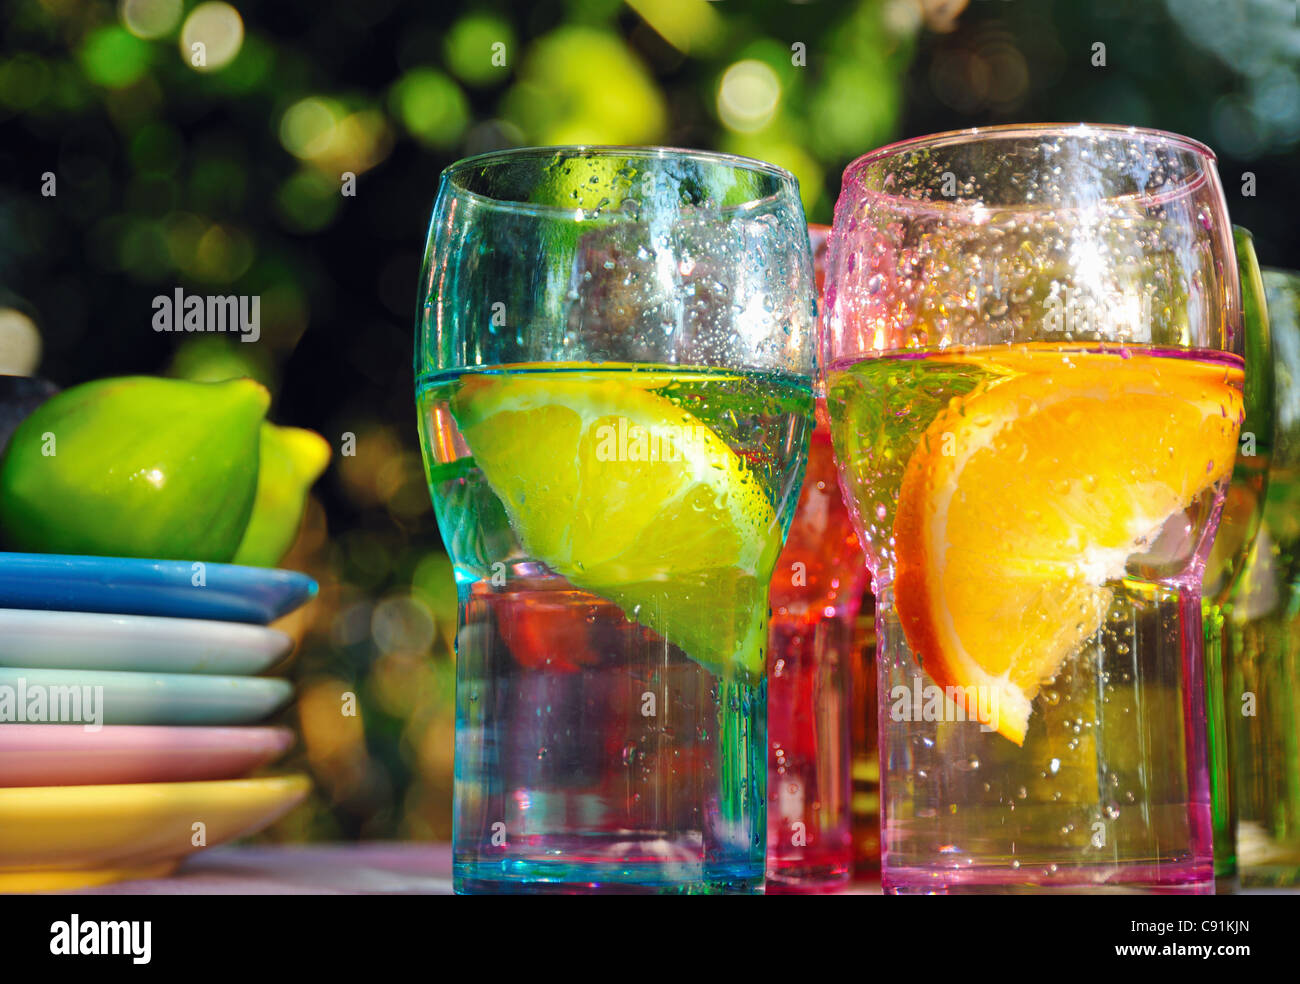 Fruity drinks in colorful glasses - Stock Image